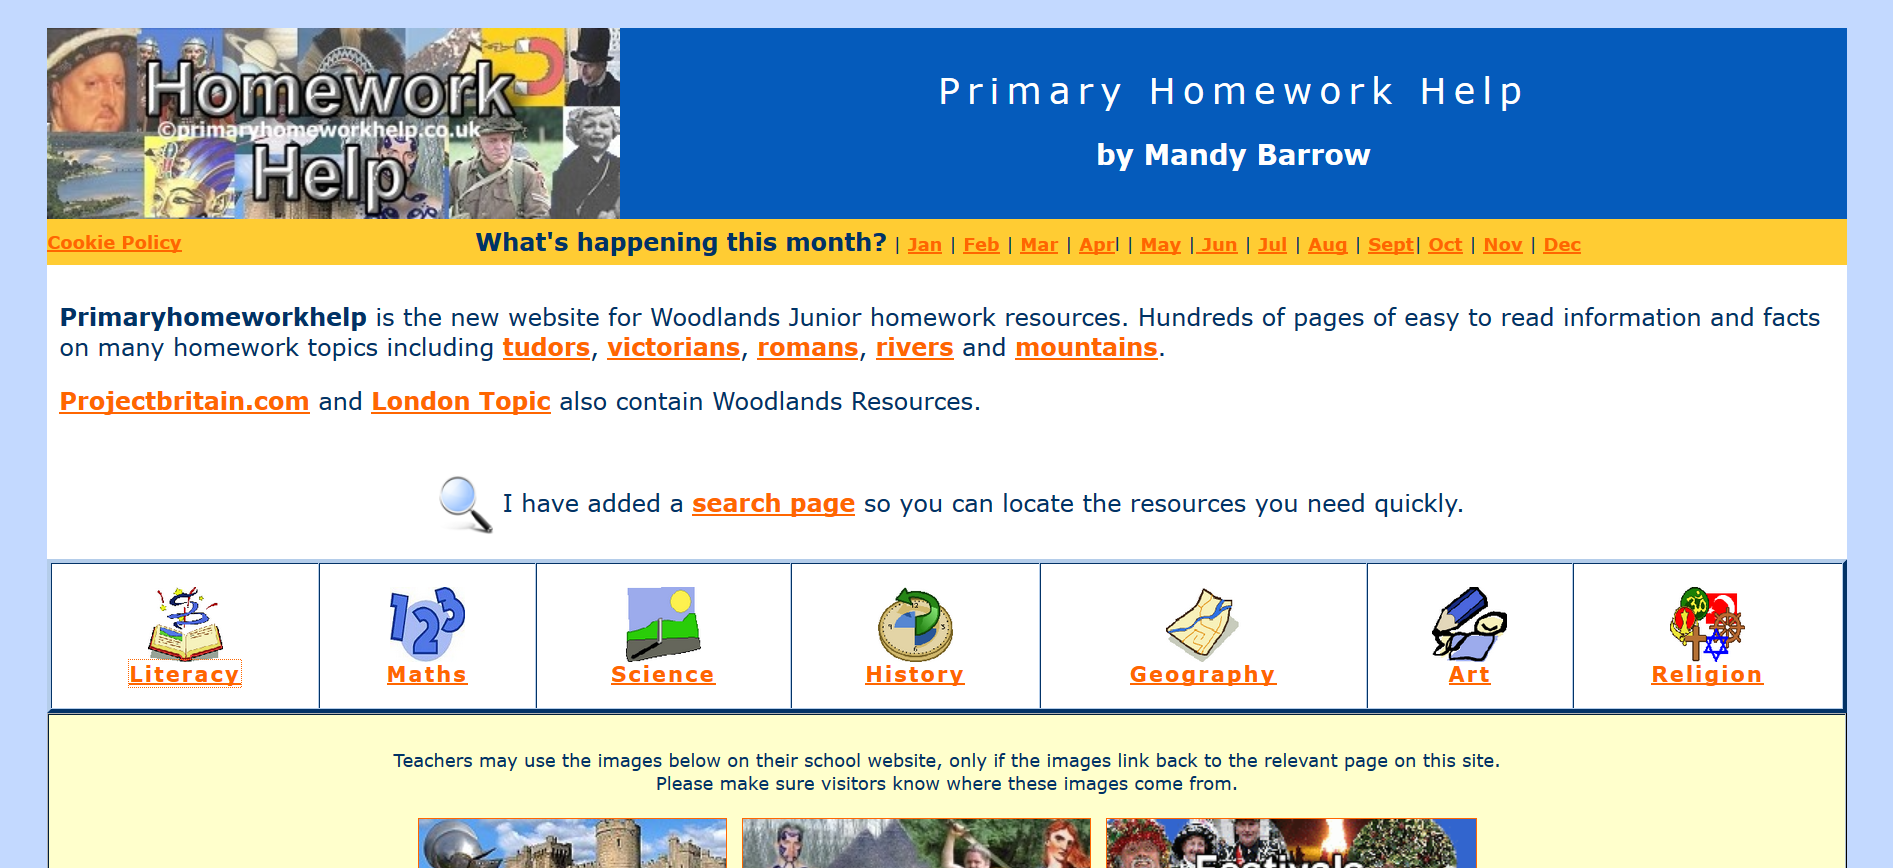 Screenshot of the Primary Homework Help website